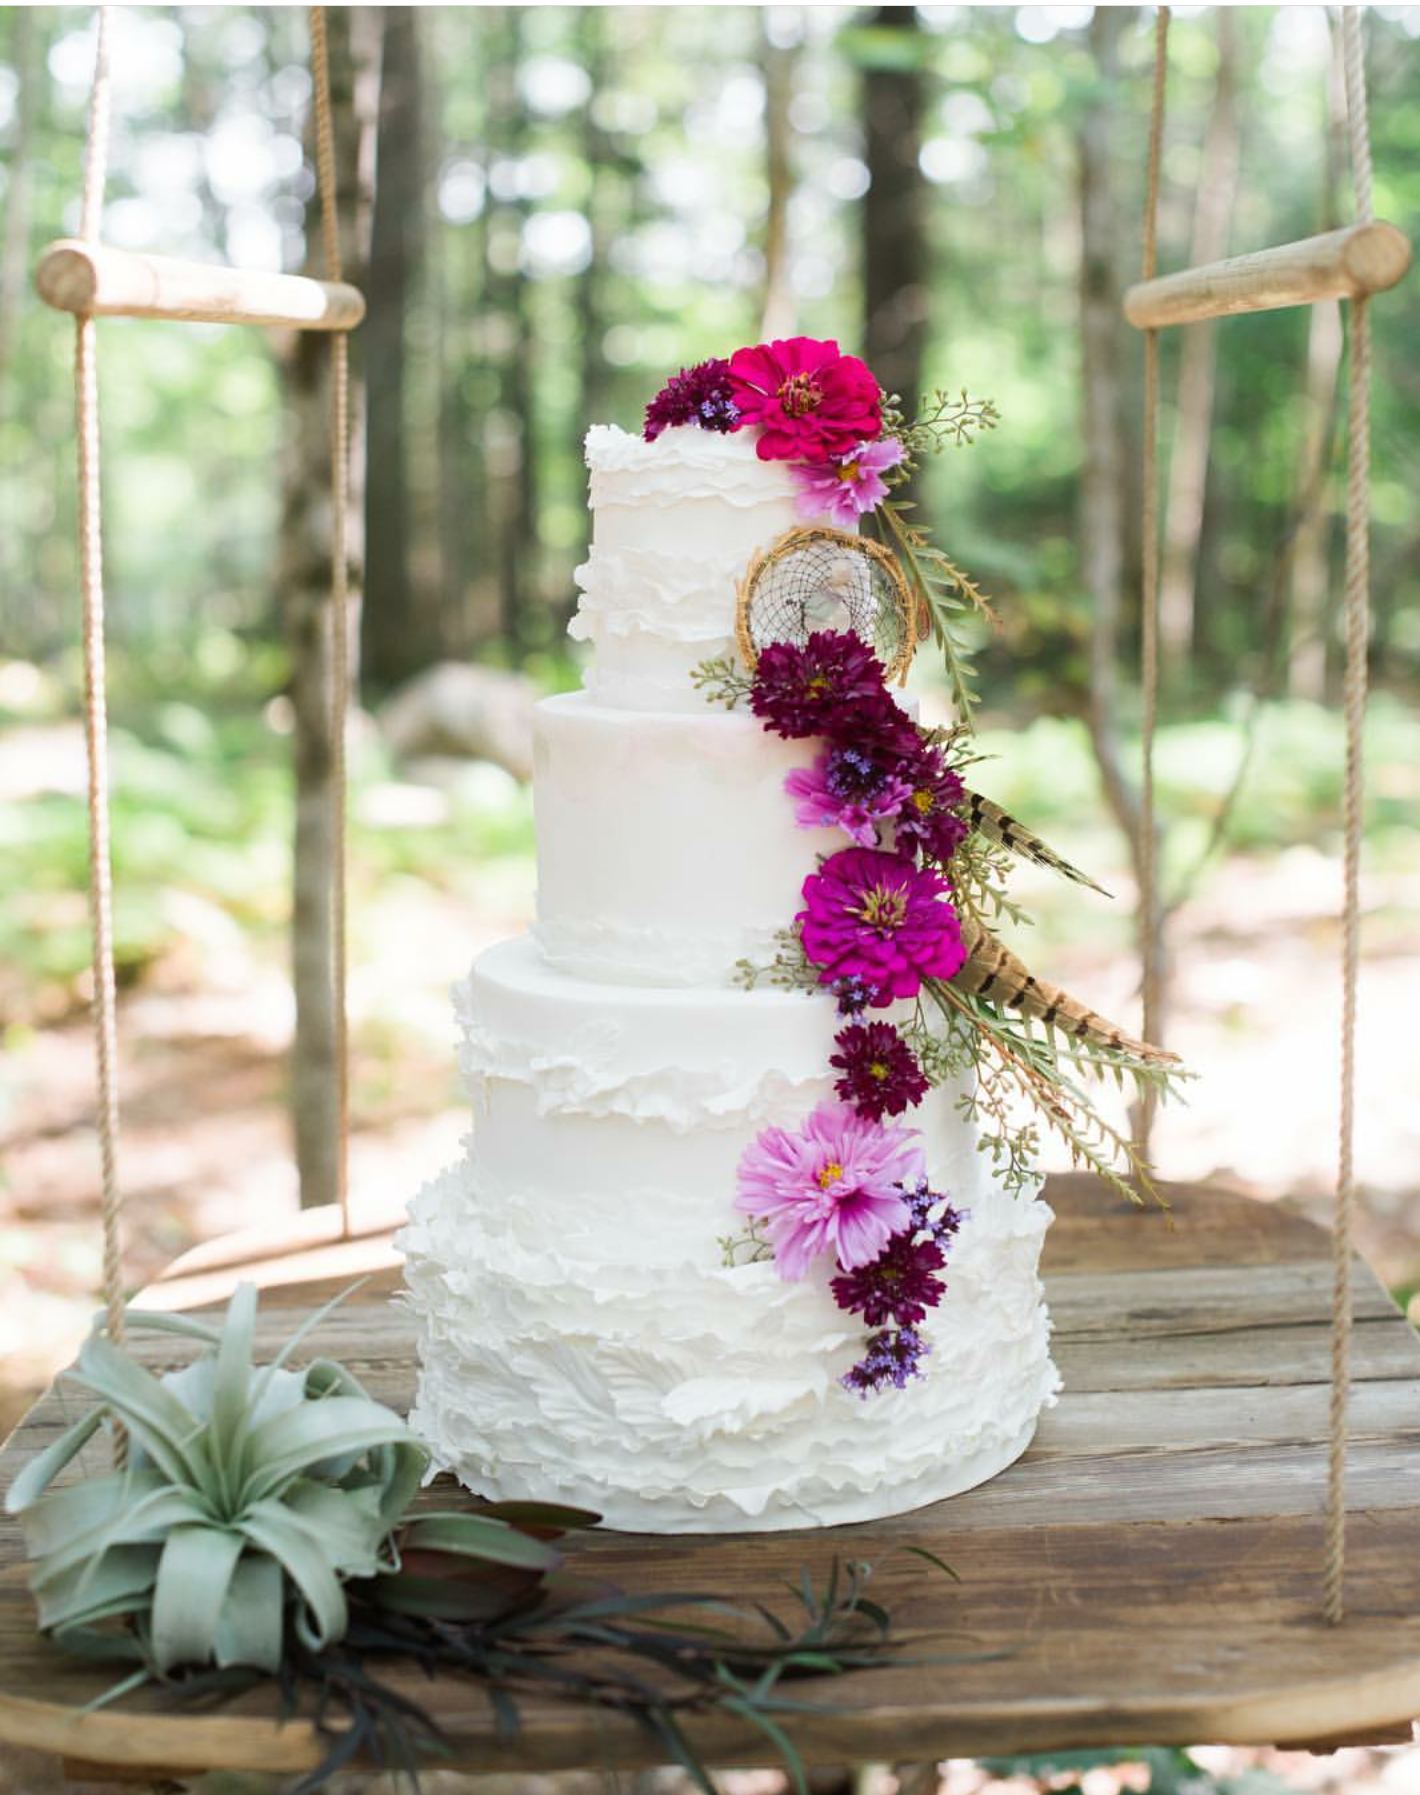 White boho wedding cake with dreamcatcher and sugar flowers